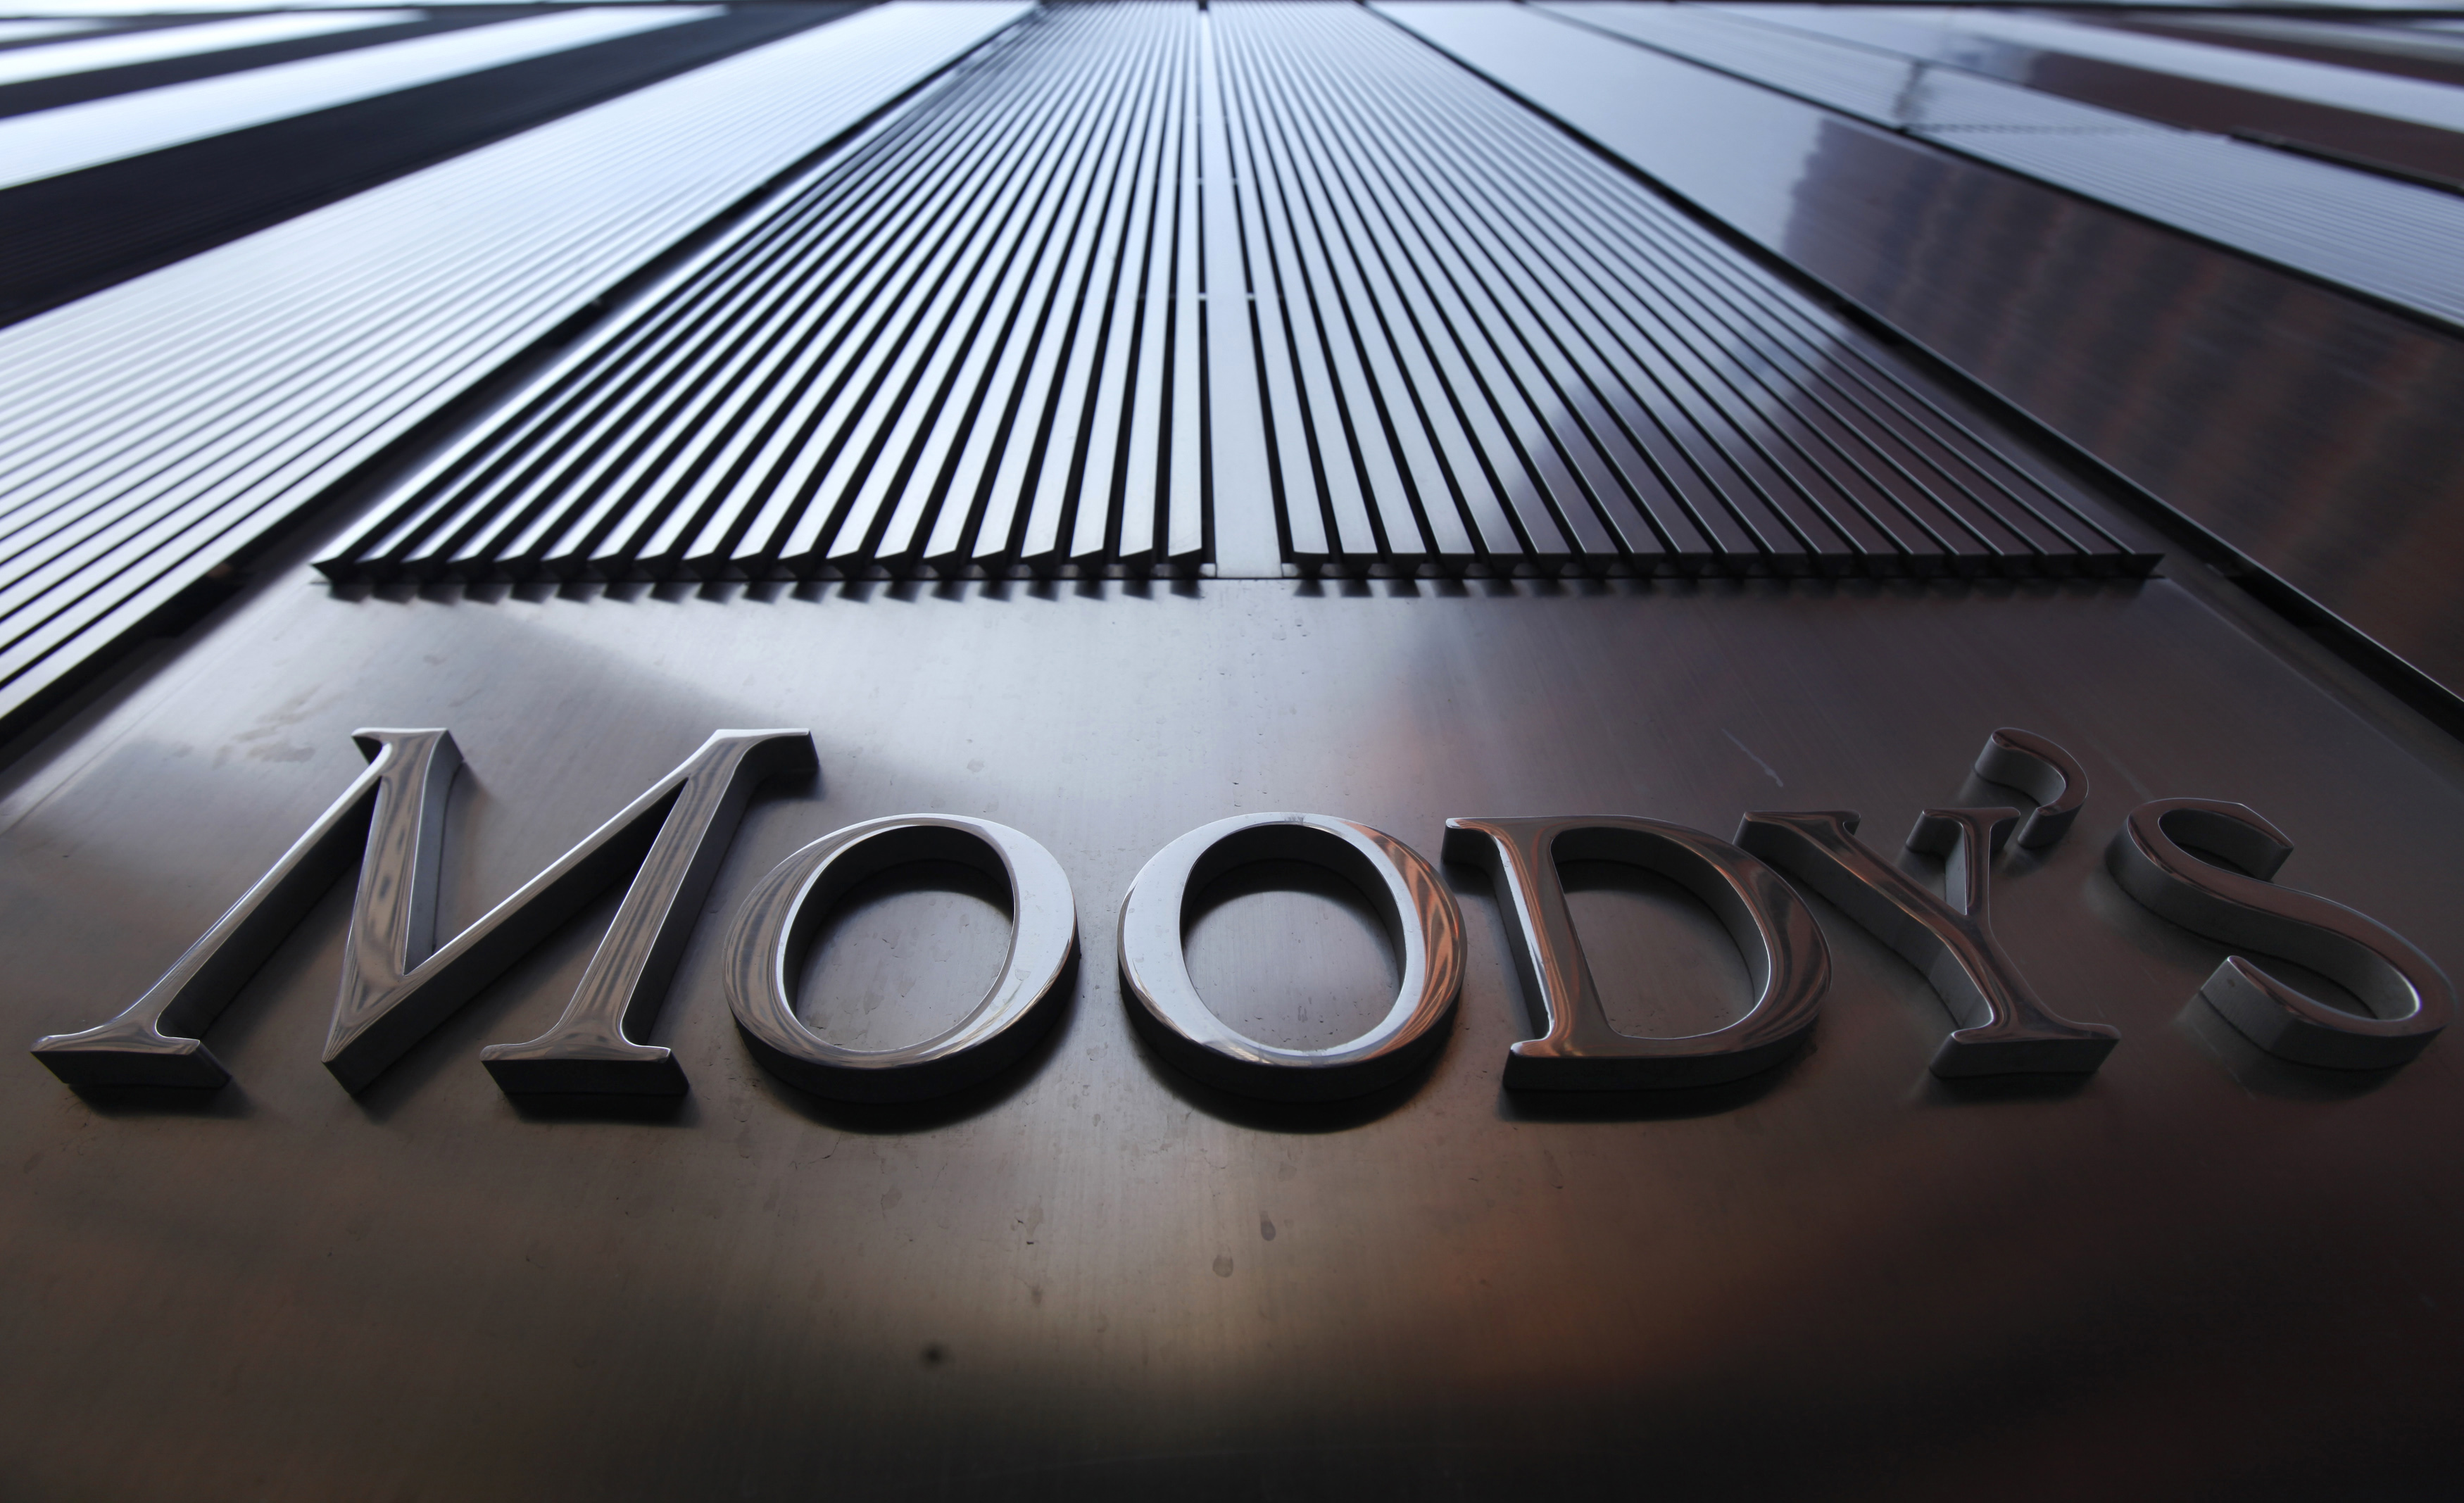 Moody's warns Greek banks due to the political uncertainty